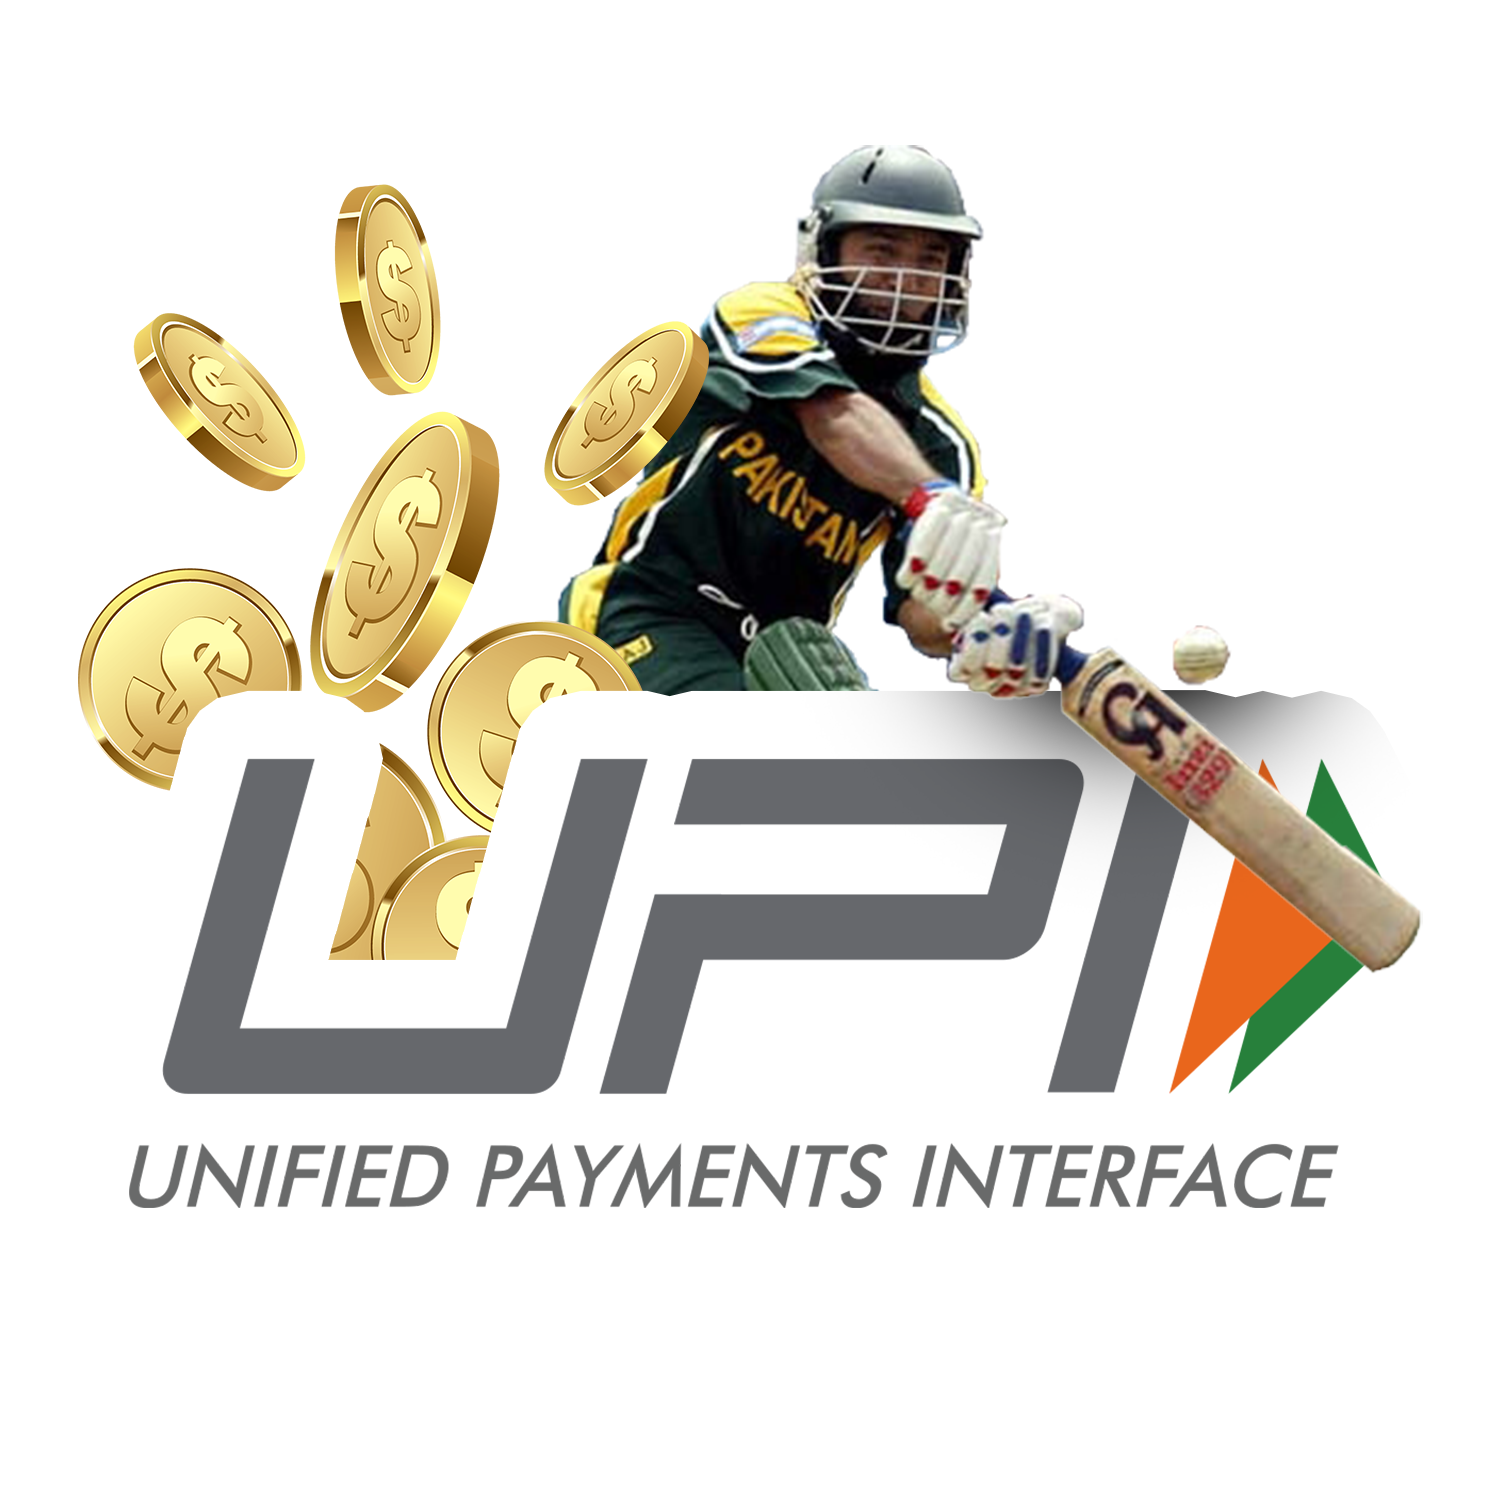 This system combines different payment mrthods and makes cricket betting depositing even easier.